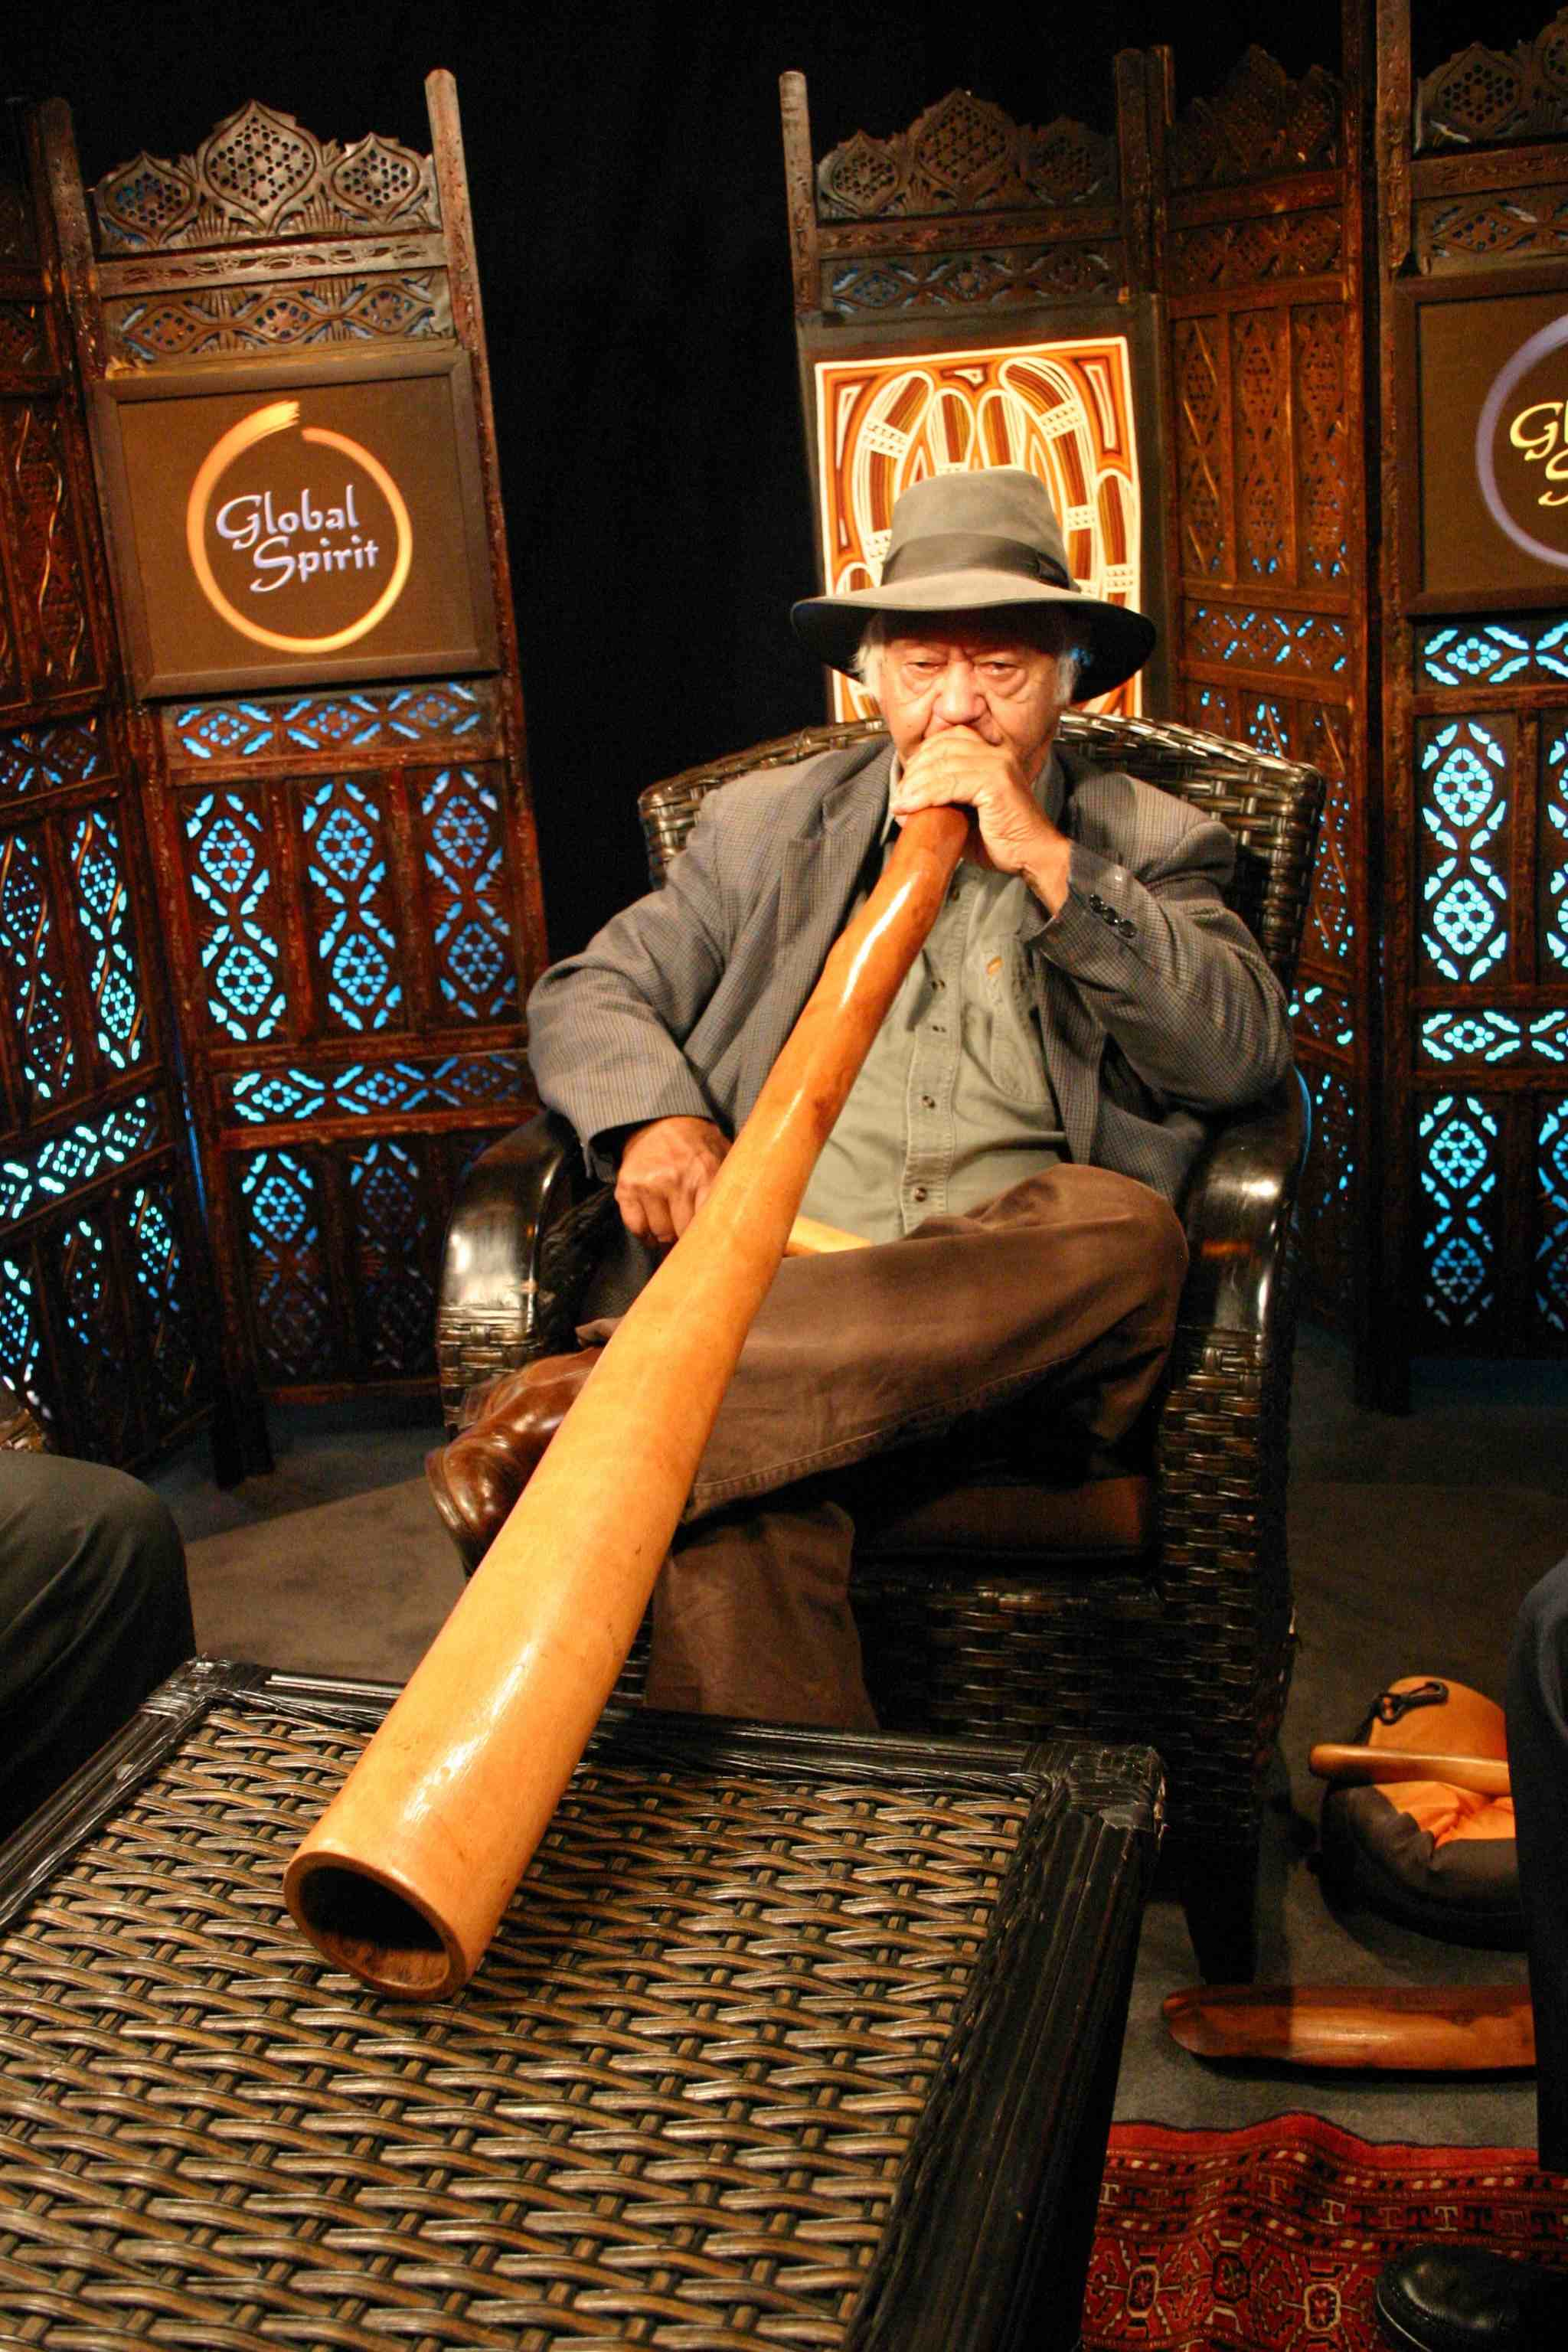 2012-09-12-DREAMSBillplaysDidgeridoo.jpg